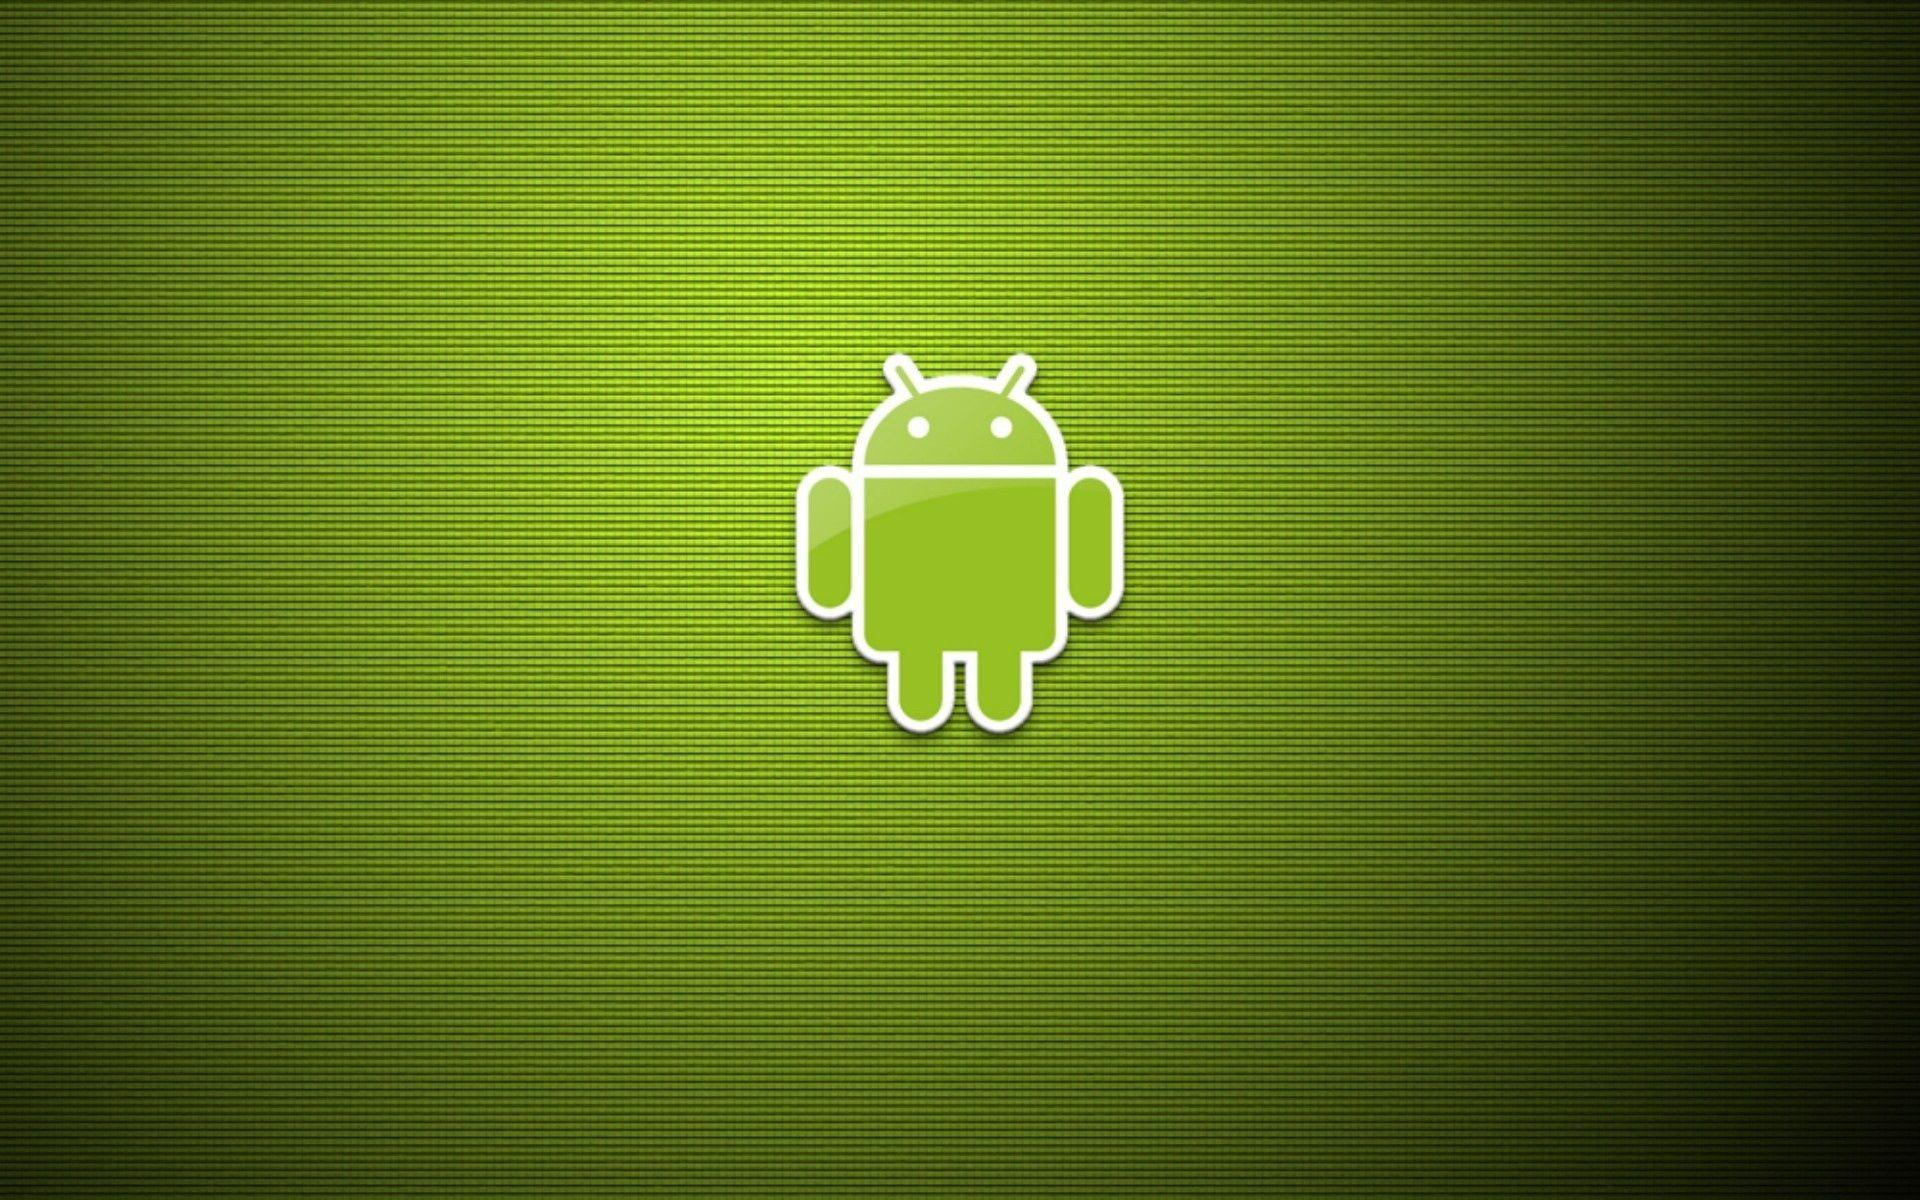 Apple Android Logo 29 HD Images Wallpapers | HD Image Wallpaper